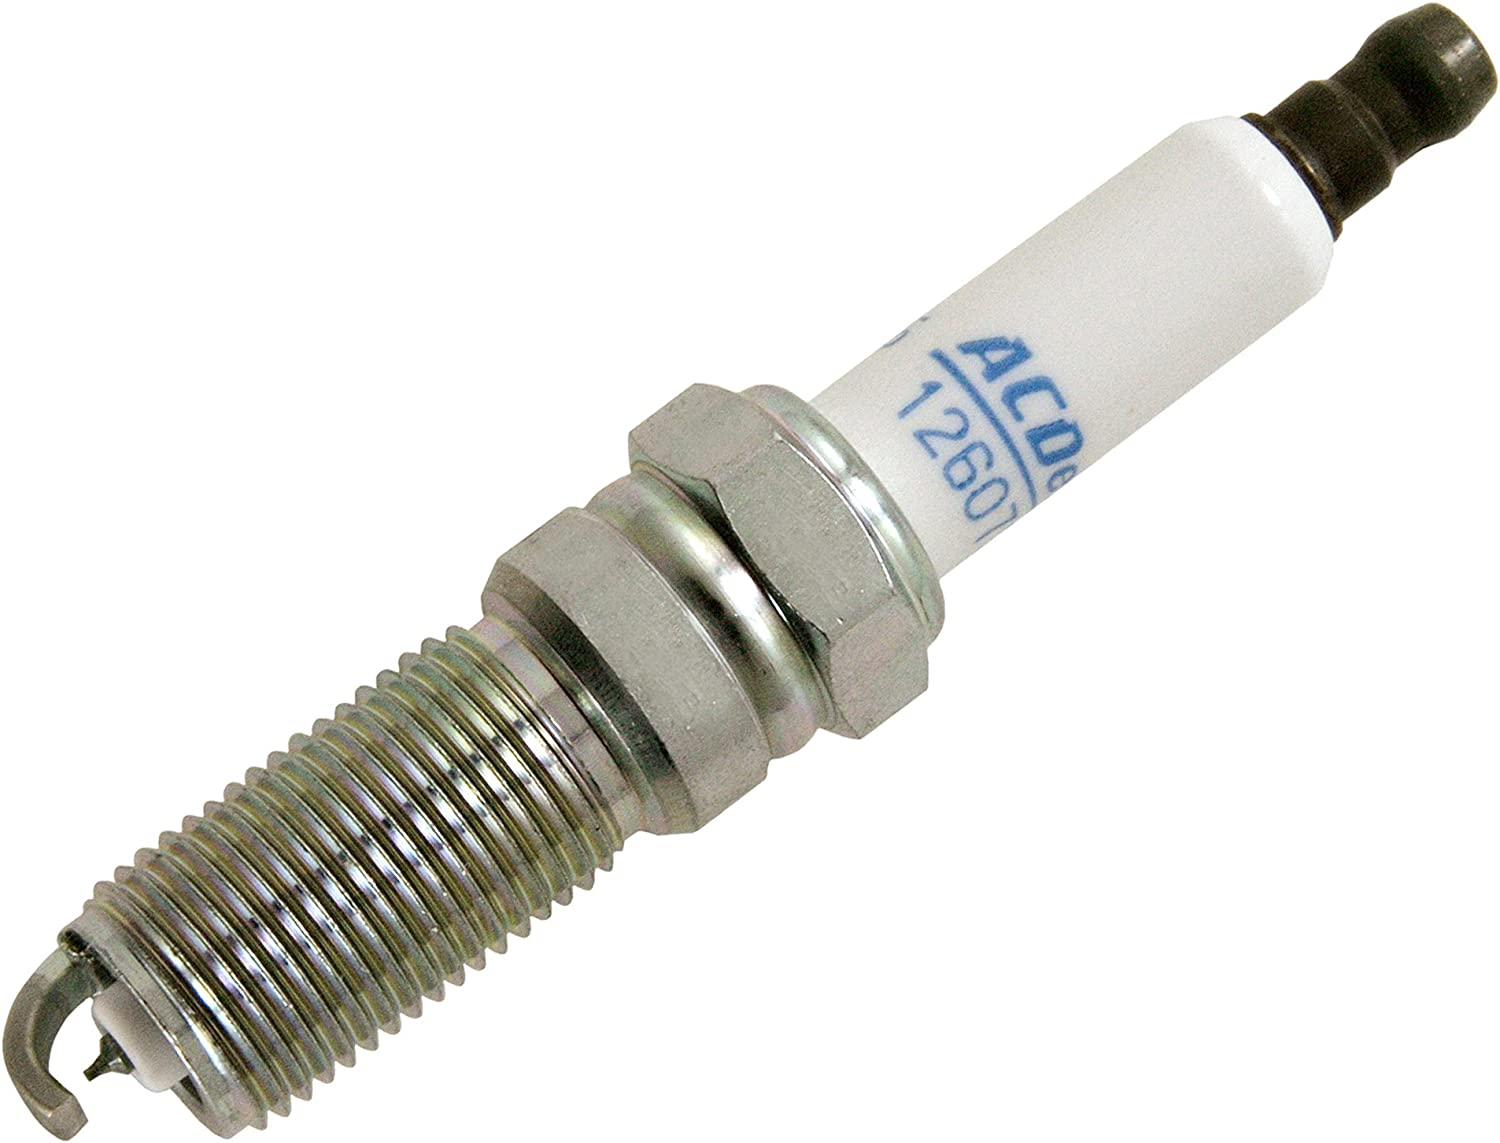 Pack of 1 ACDelco 41-105 Professional Iridium Spark Plug